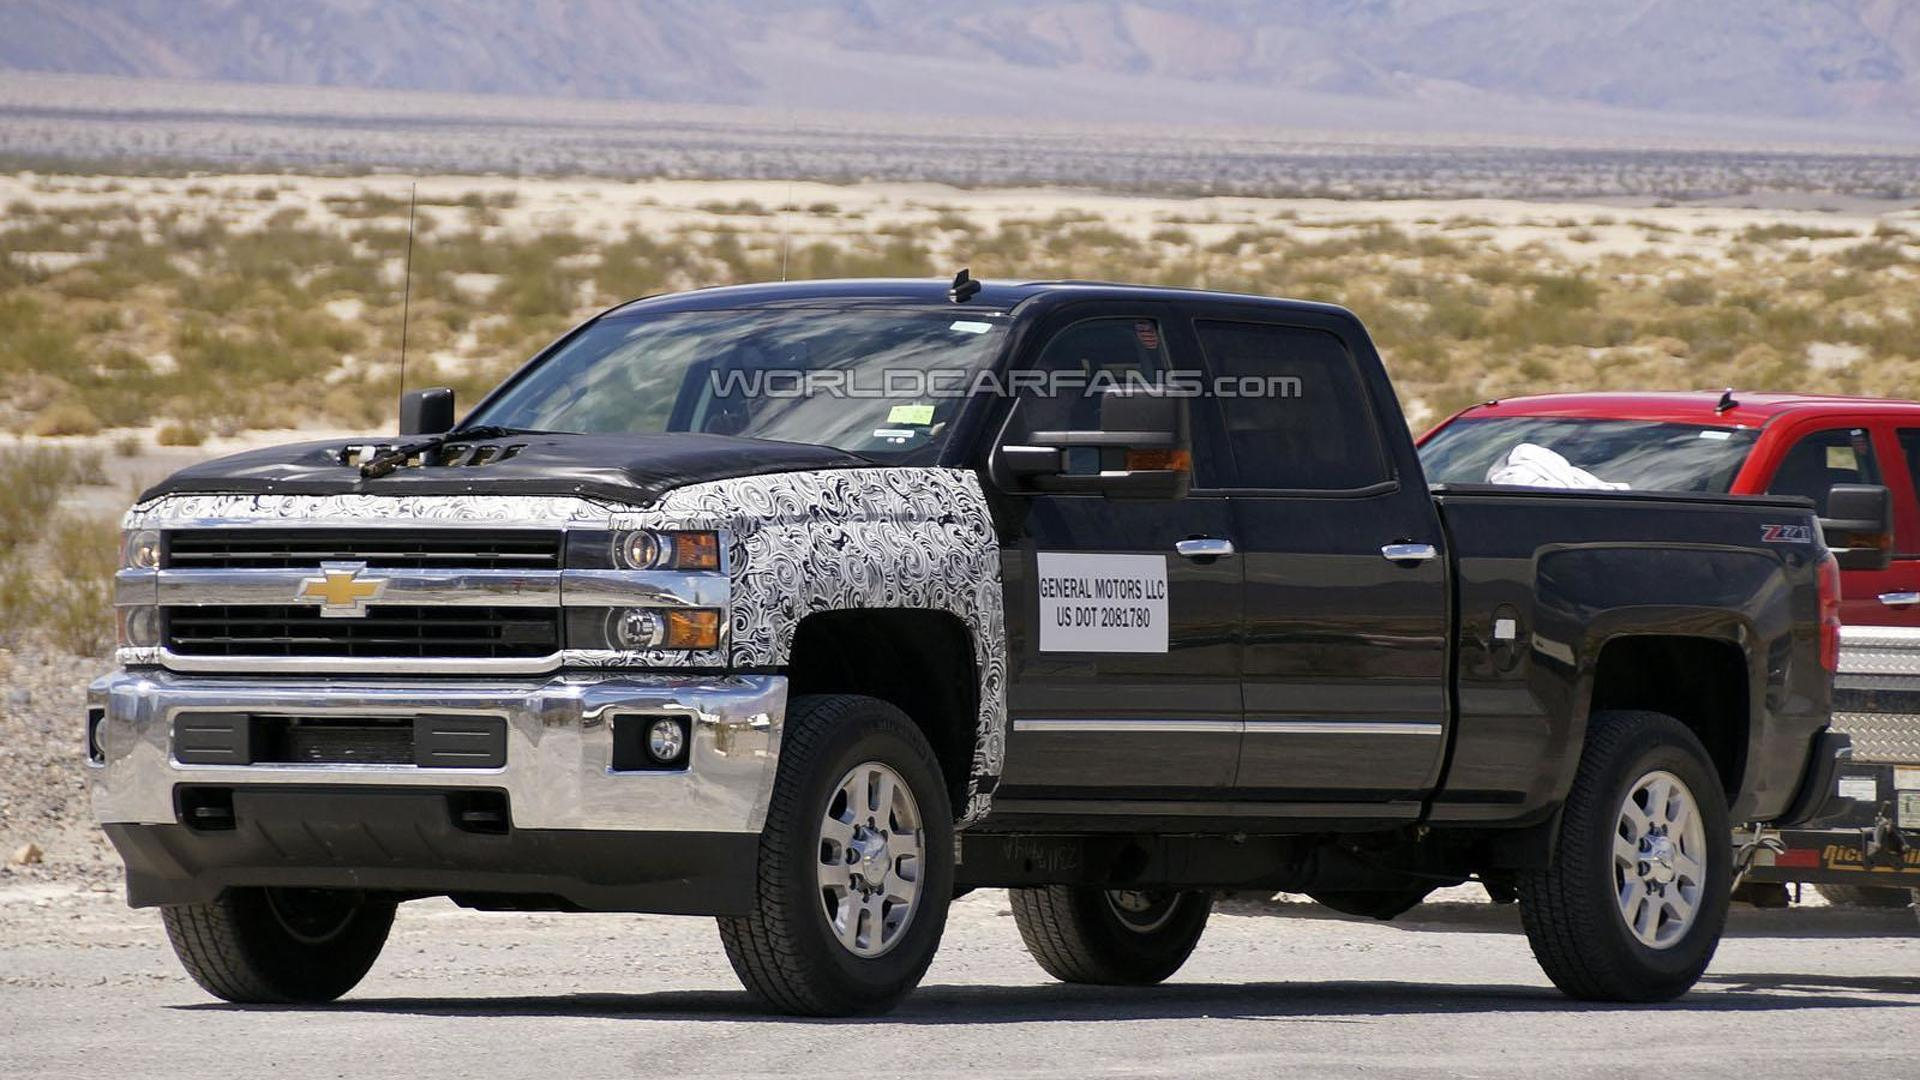 2016 Chevrolet Silverado HD spied, could be testing a new diesel engine